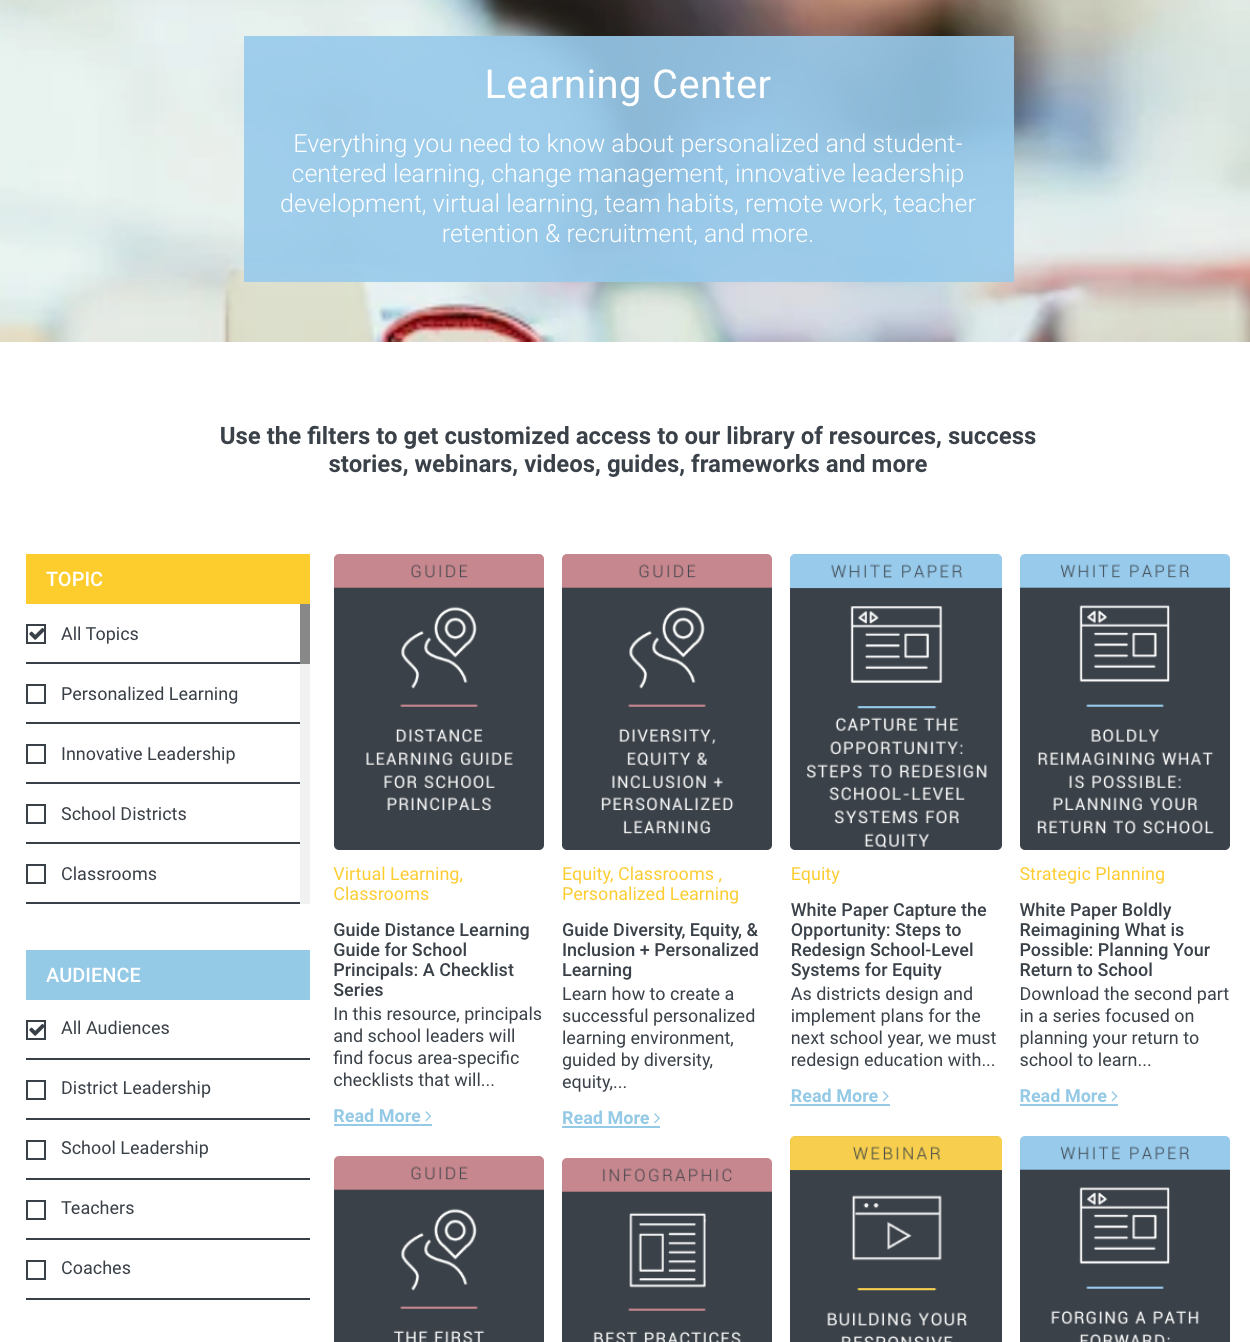 Learning Center Image